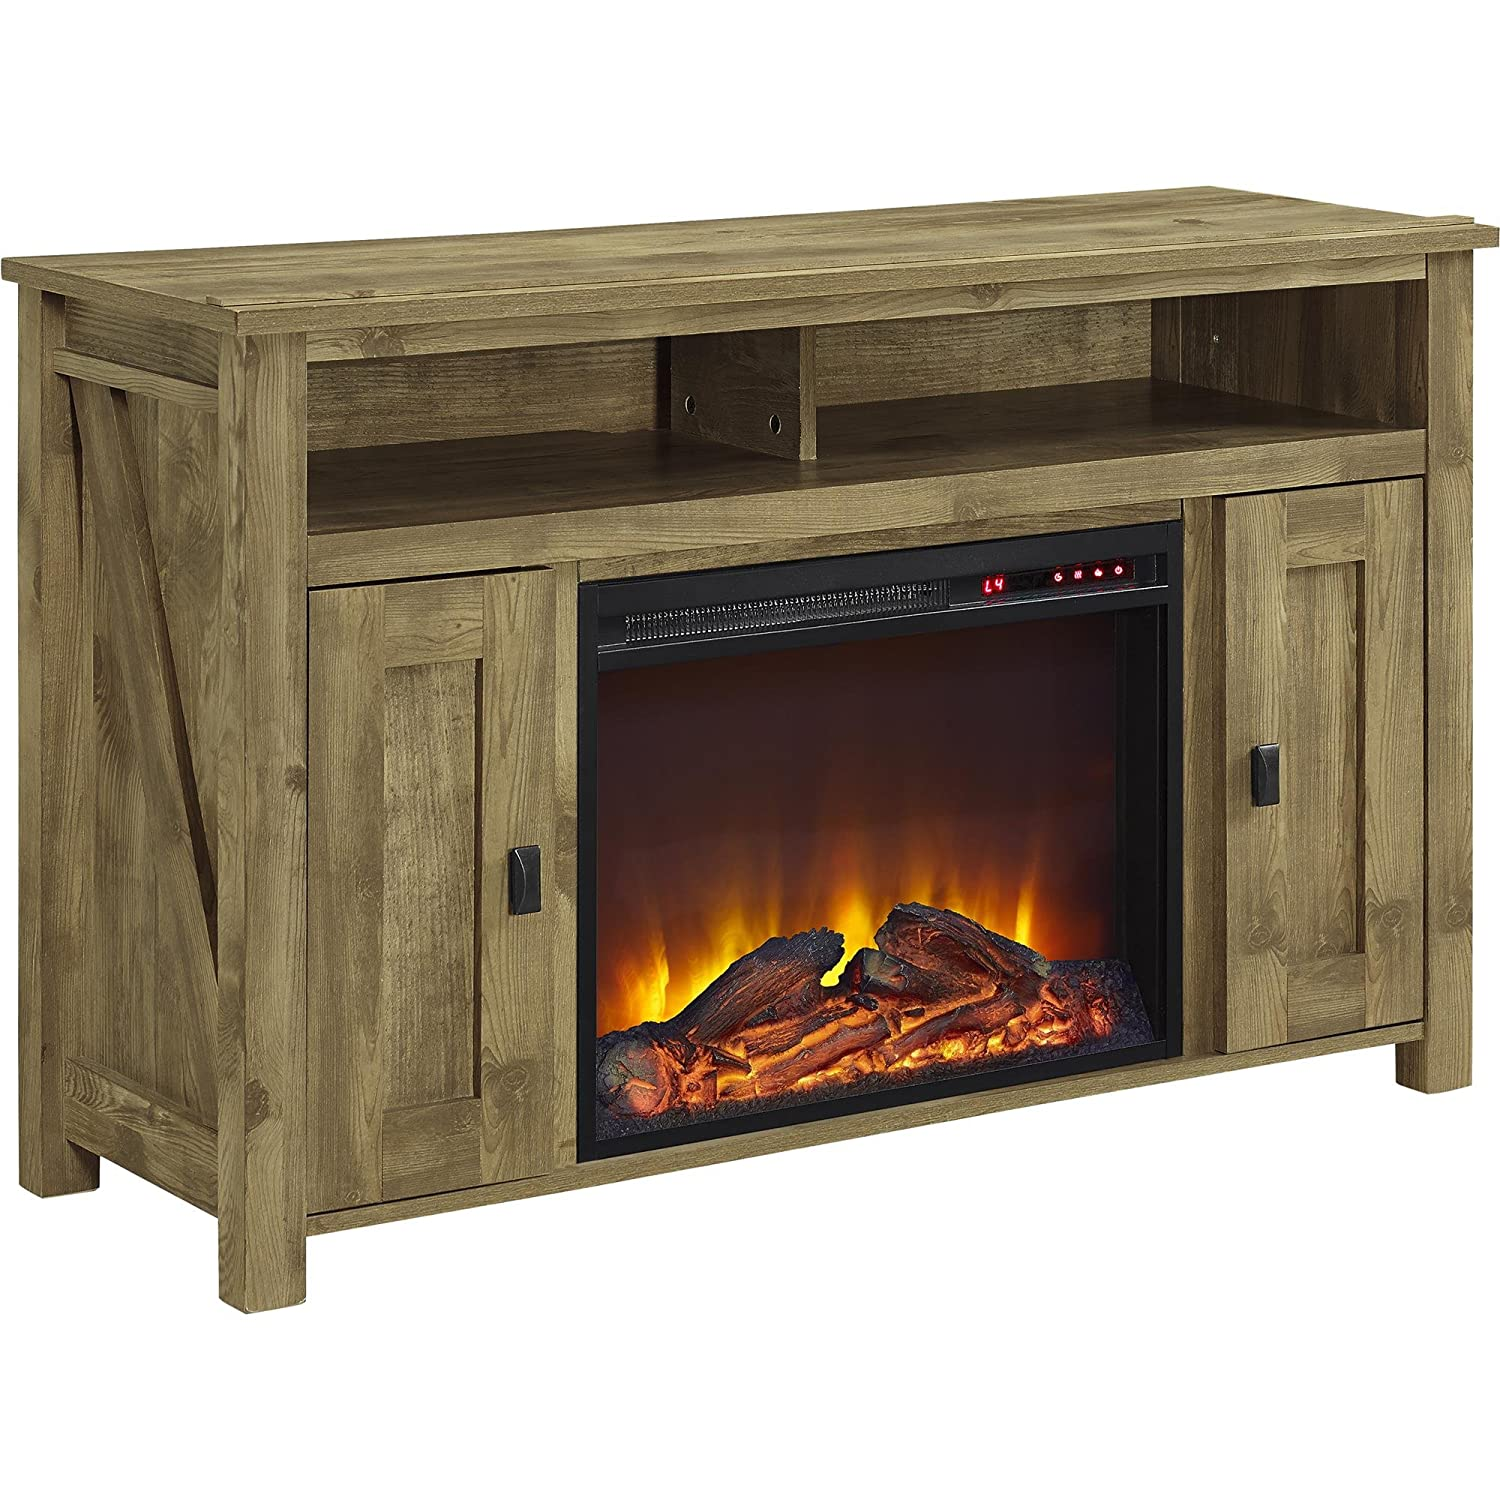 "Ameriwood Home Farmington Electric Fireplace TV Console for TVs up to 50"", Natural"